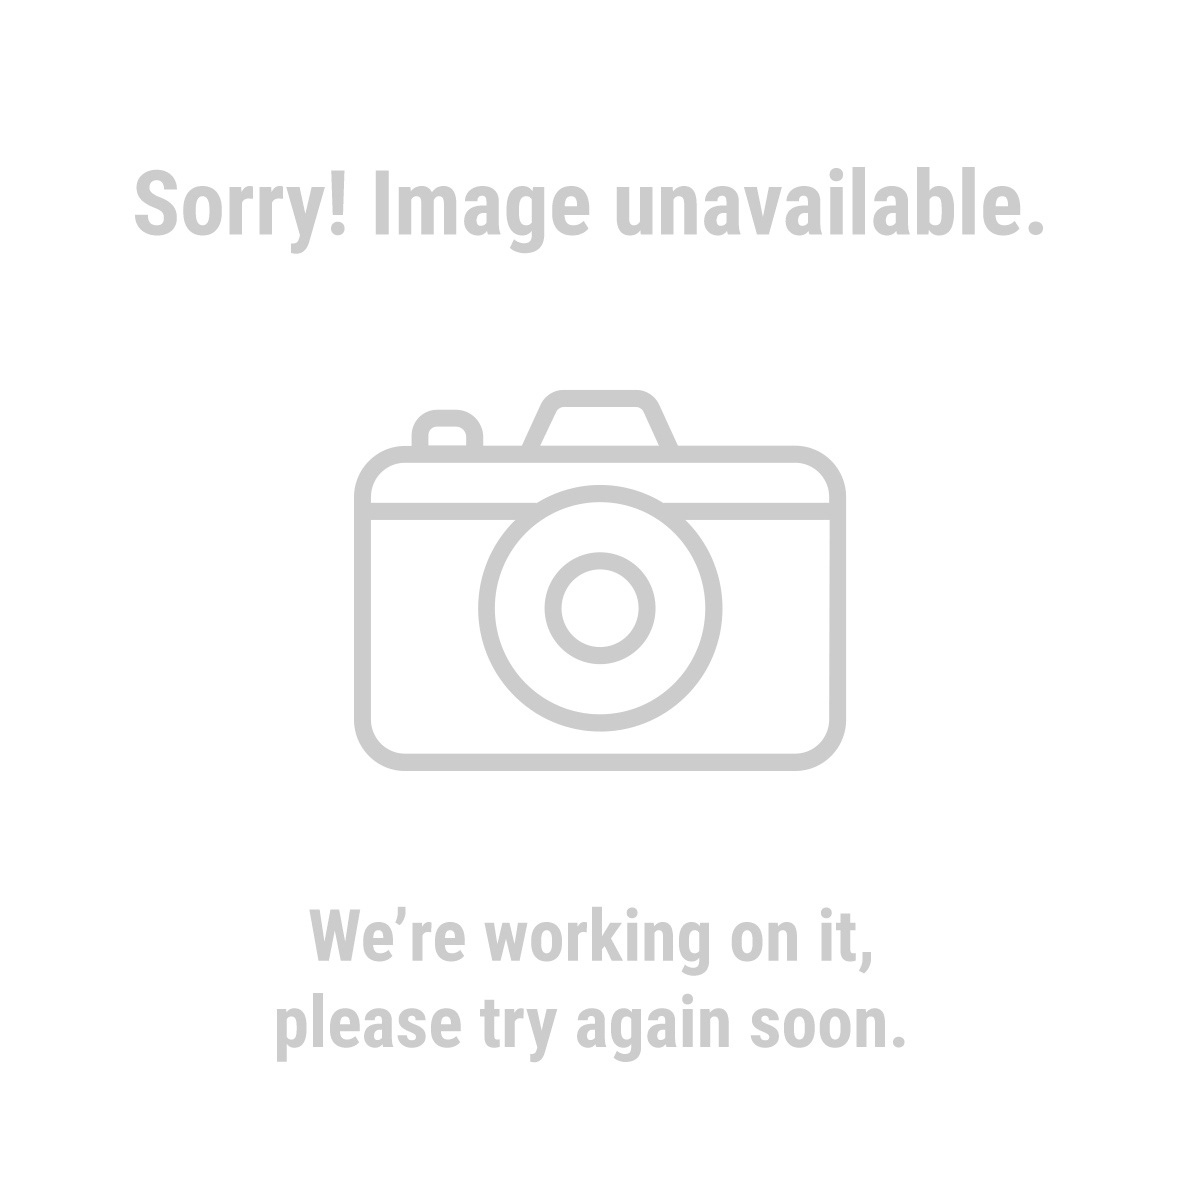 Chicago Electric Generators 66603 16 HP, 6500 Rated Watts/7000 Max Watts Portable Generator - Carb